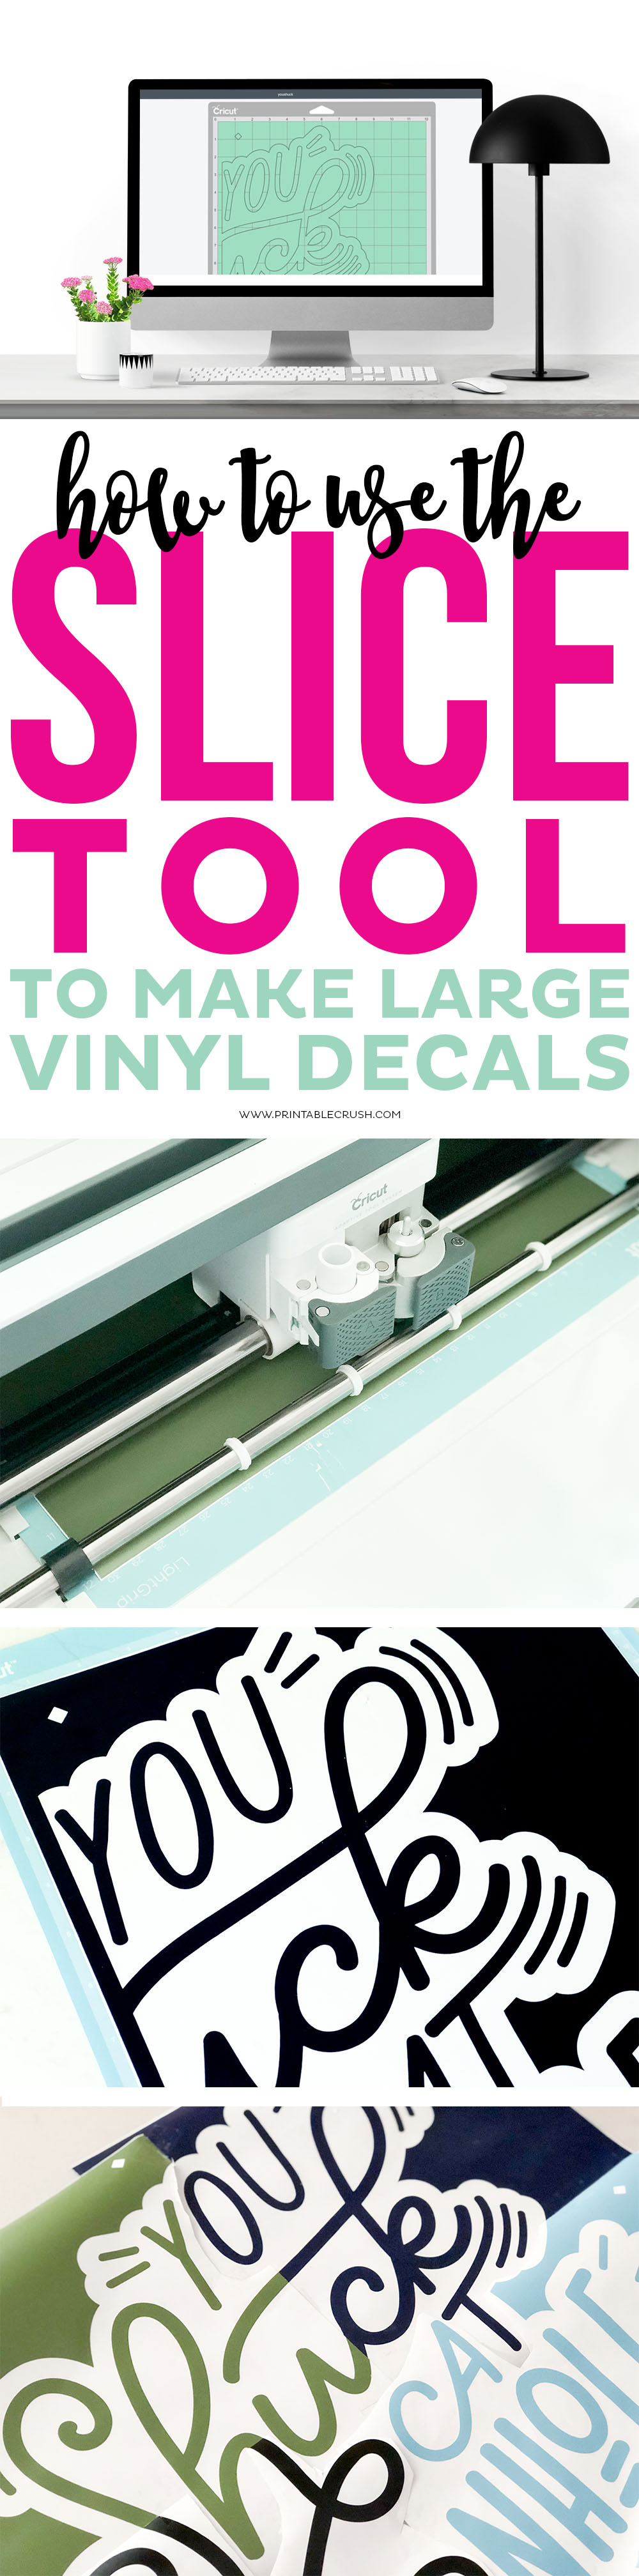 How To Use The Slice Tool To Make Large Vinyl Decals Printable Crush - How to make vinyl decals with a cricut